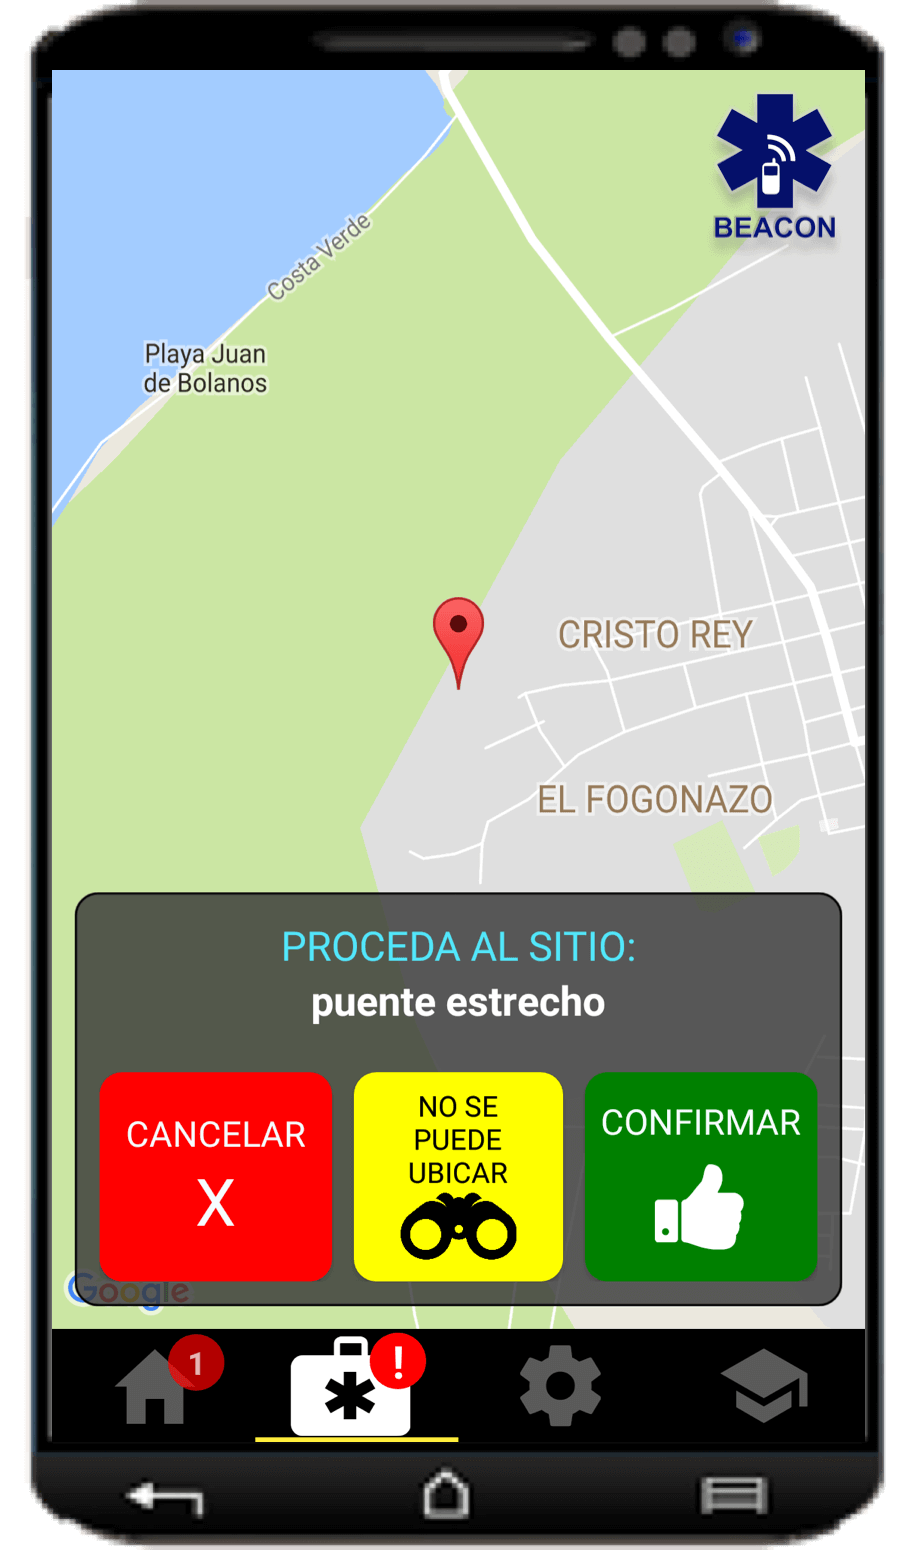 beacon-despacho-de-emergencia_02_proceda-al-sitio_android_esp